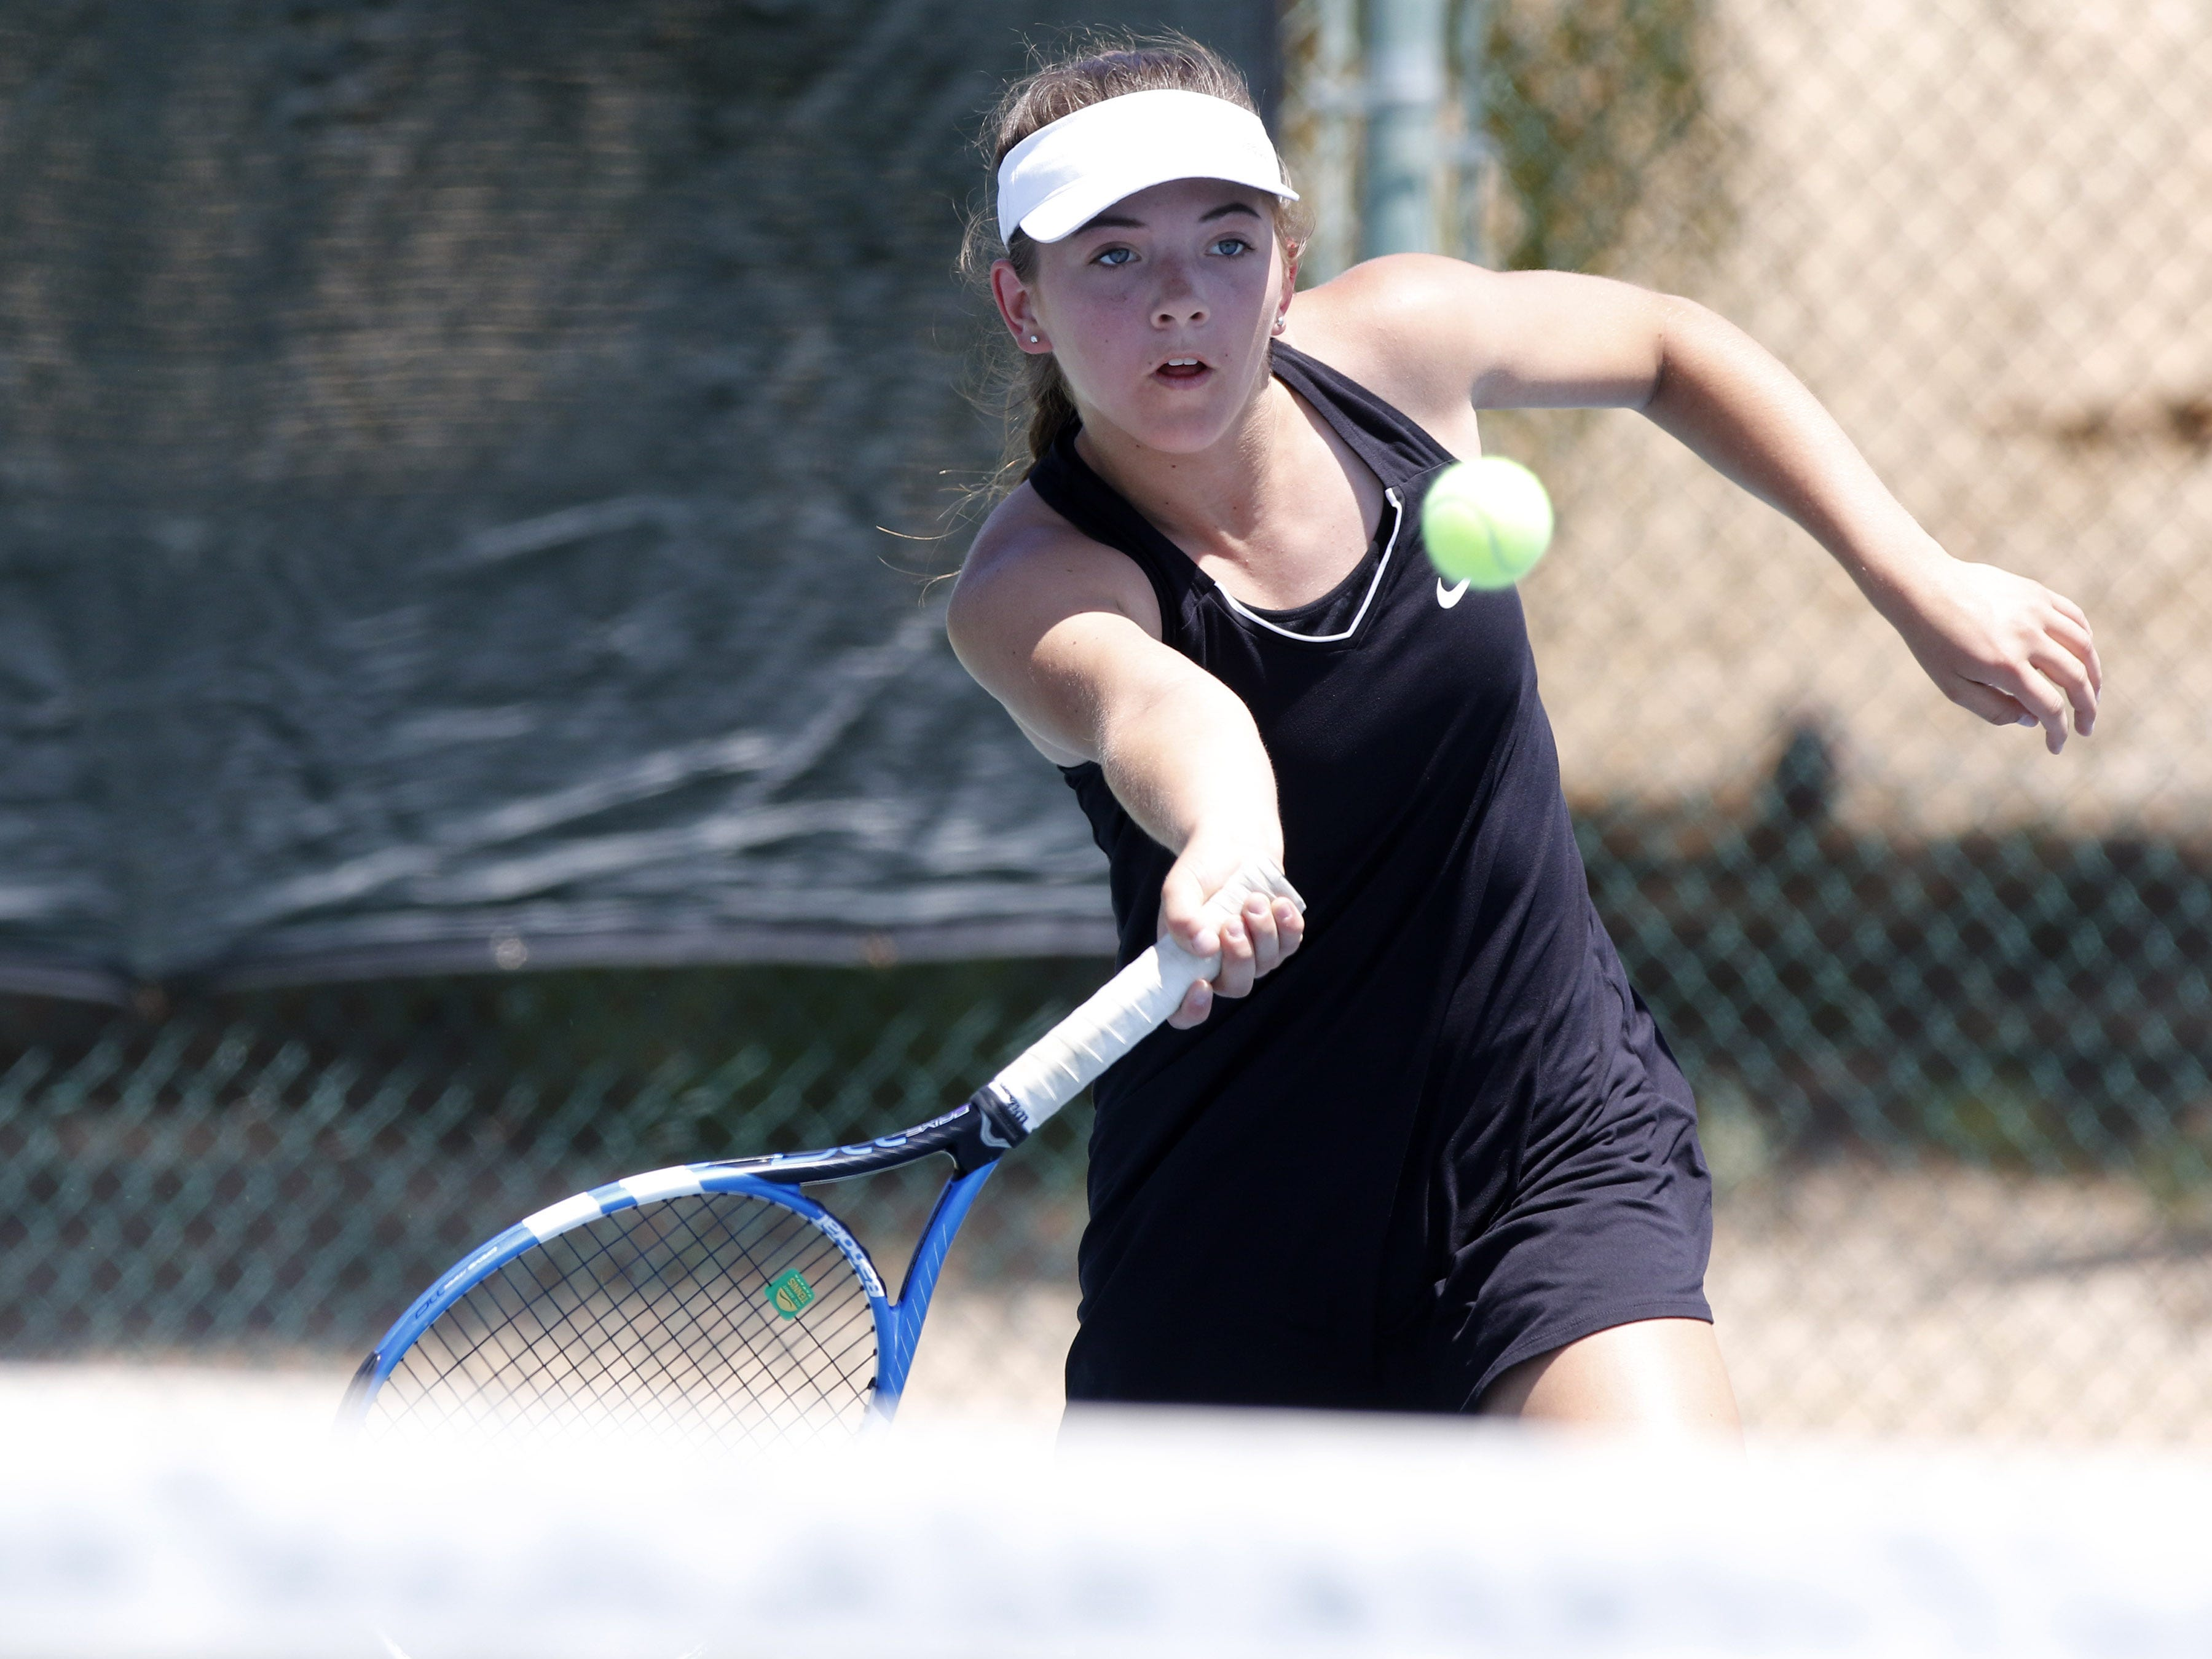 Thatcher's Ellie Akler returns a forehand shot as she plays Pusch Ridge's Emily Johnsboen during the Division III tennis team state championship in Glendale, Arizona, May 04, 2019.